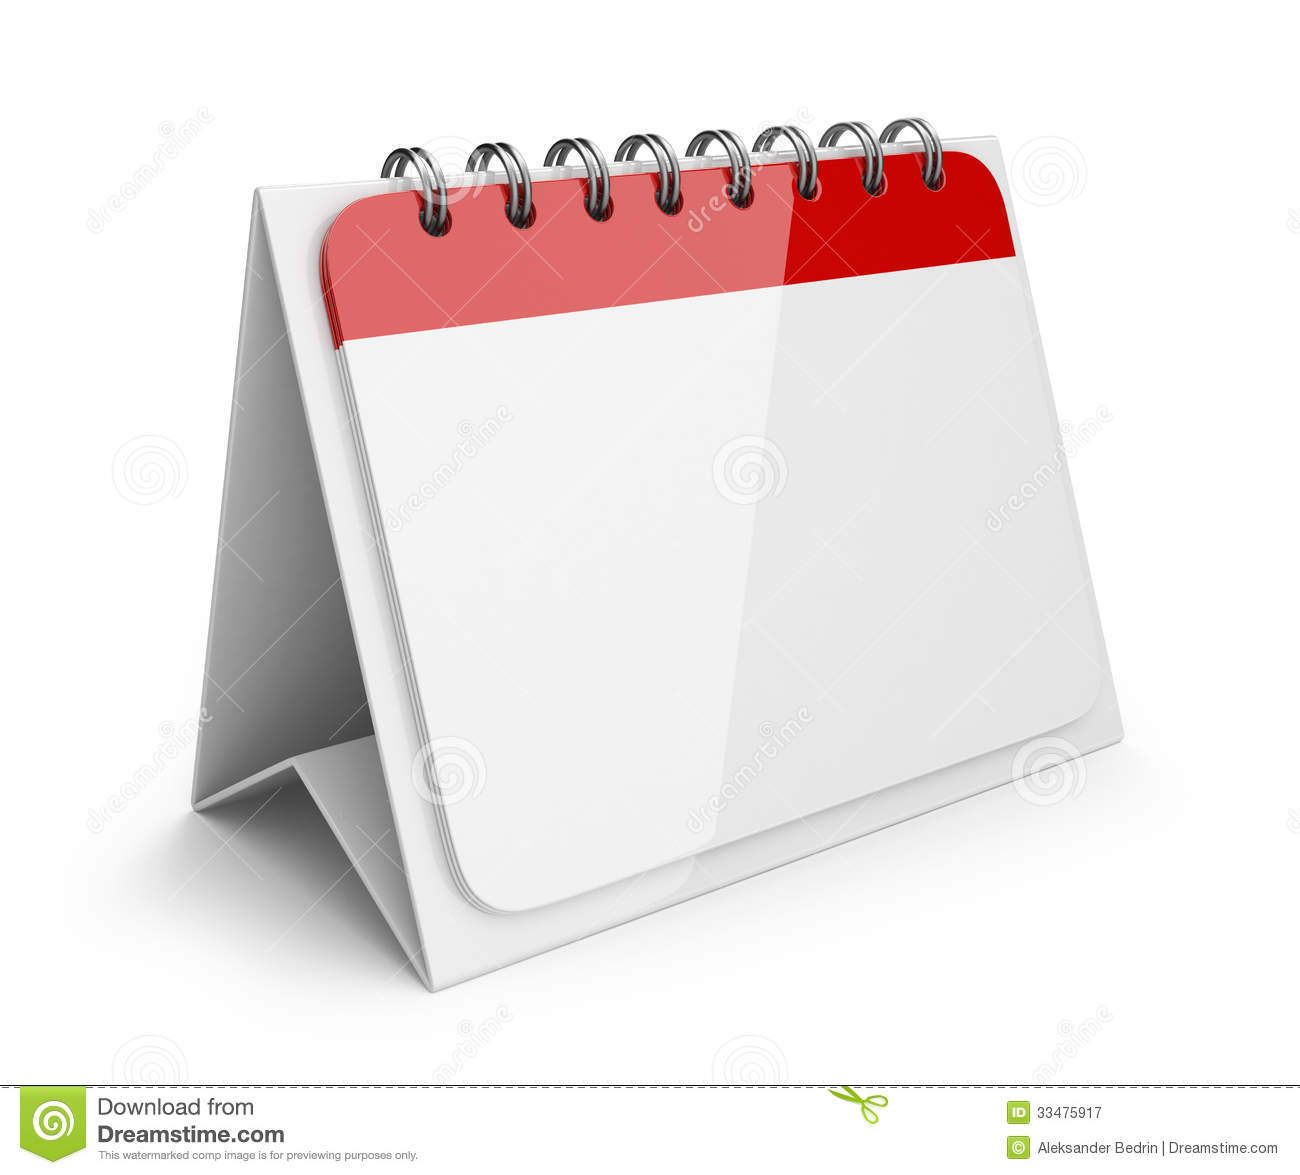 Blank Calendar Day Icon : Blank paper calendar d icon stock illustration